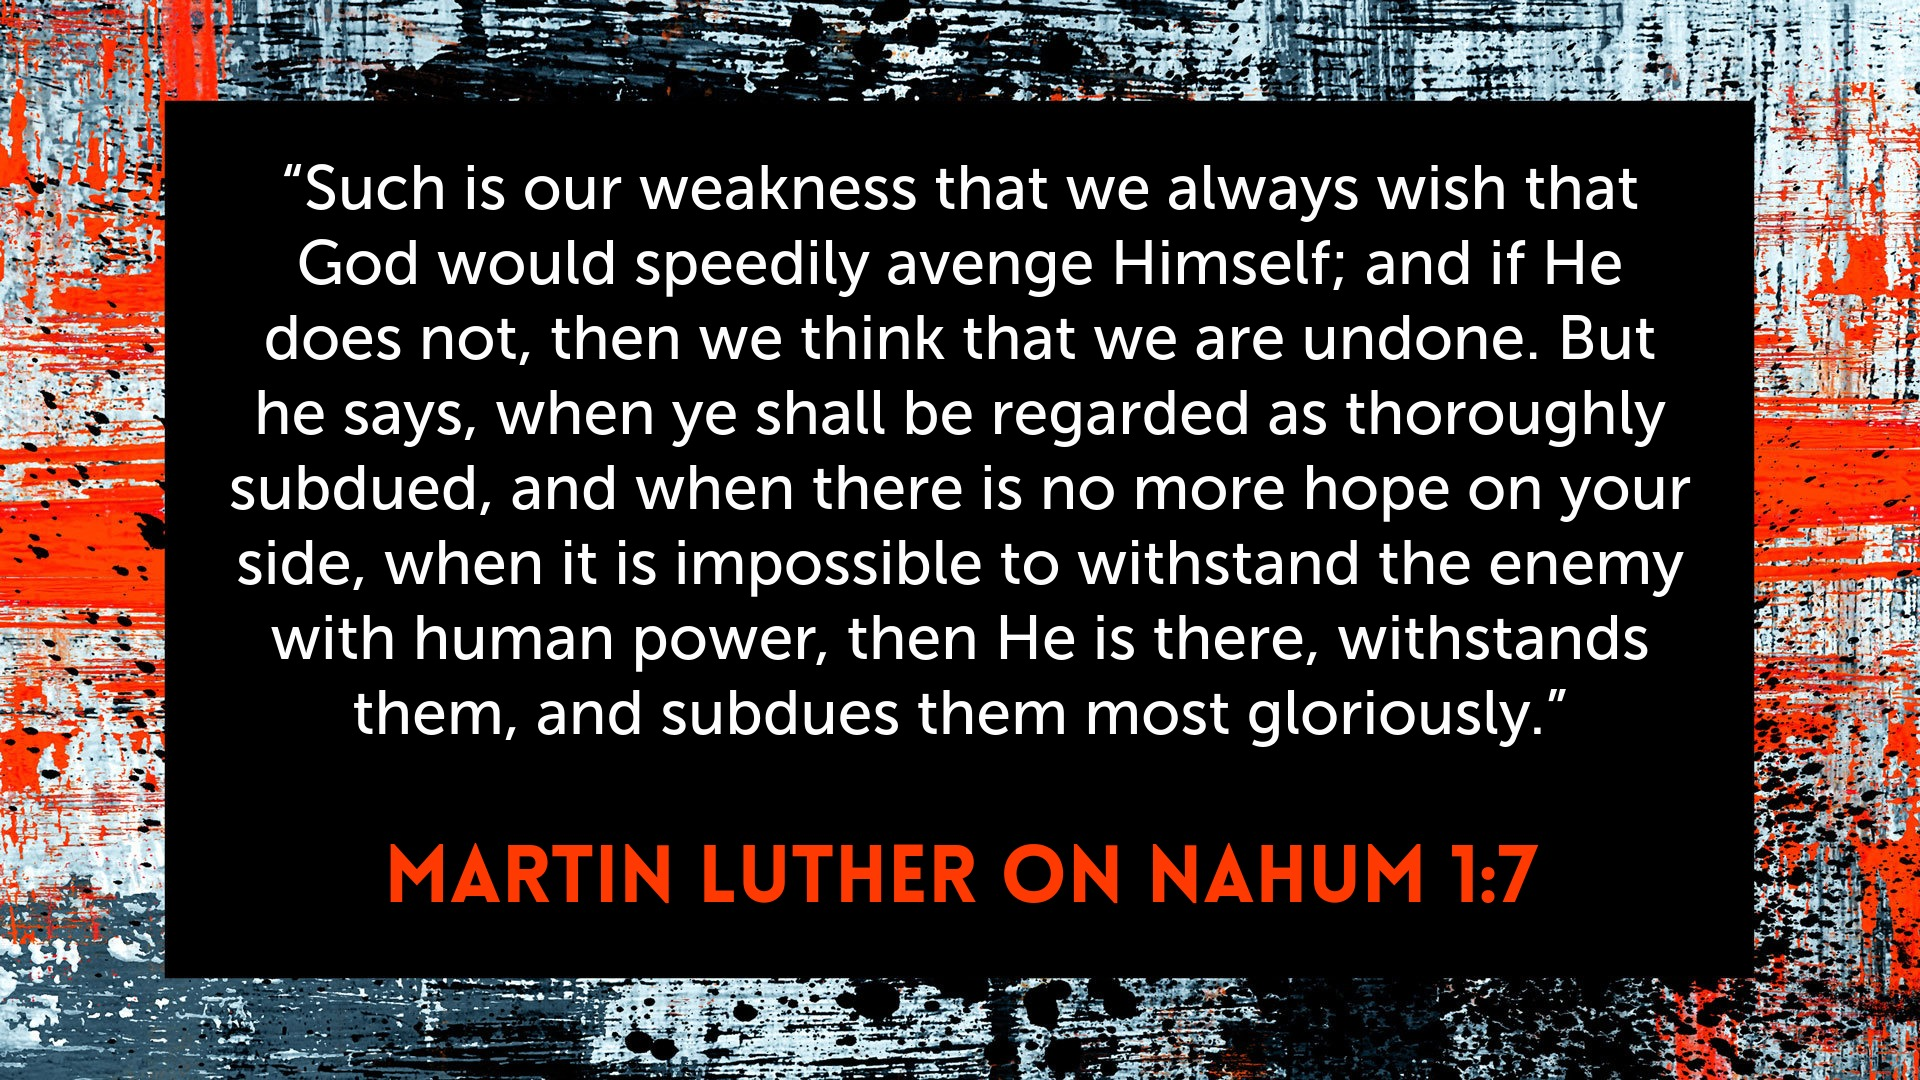 Luther on Nahum 1,7